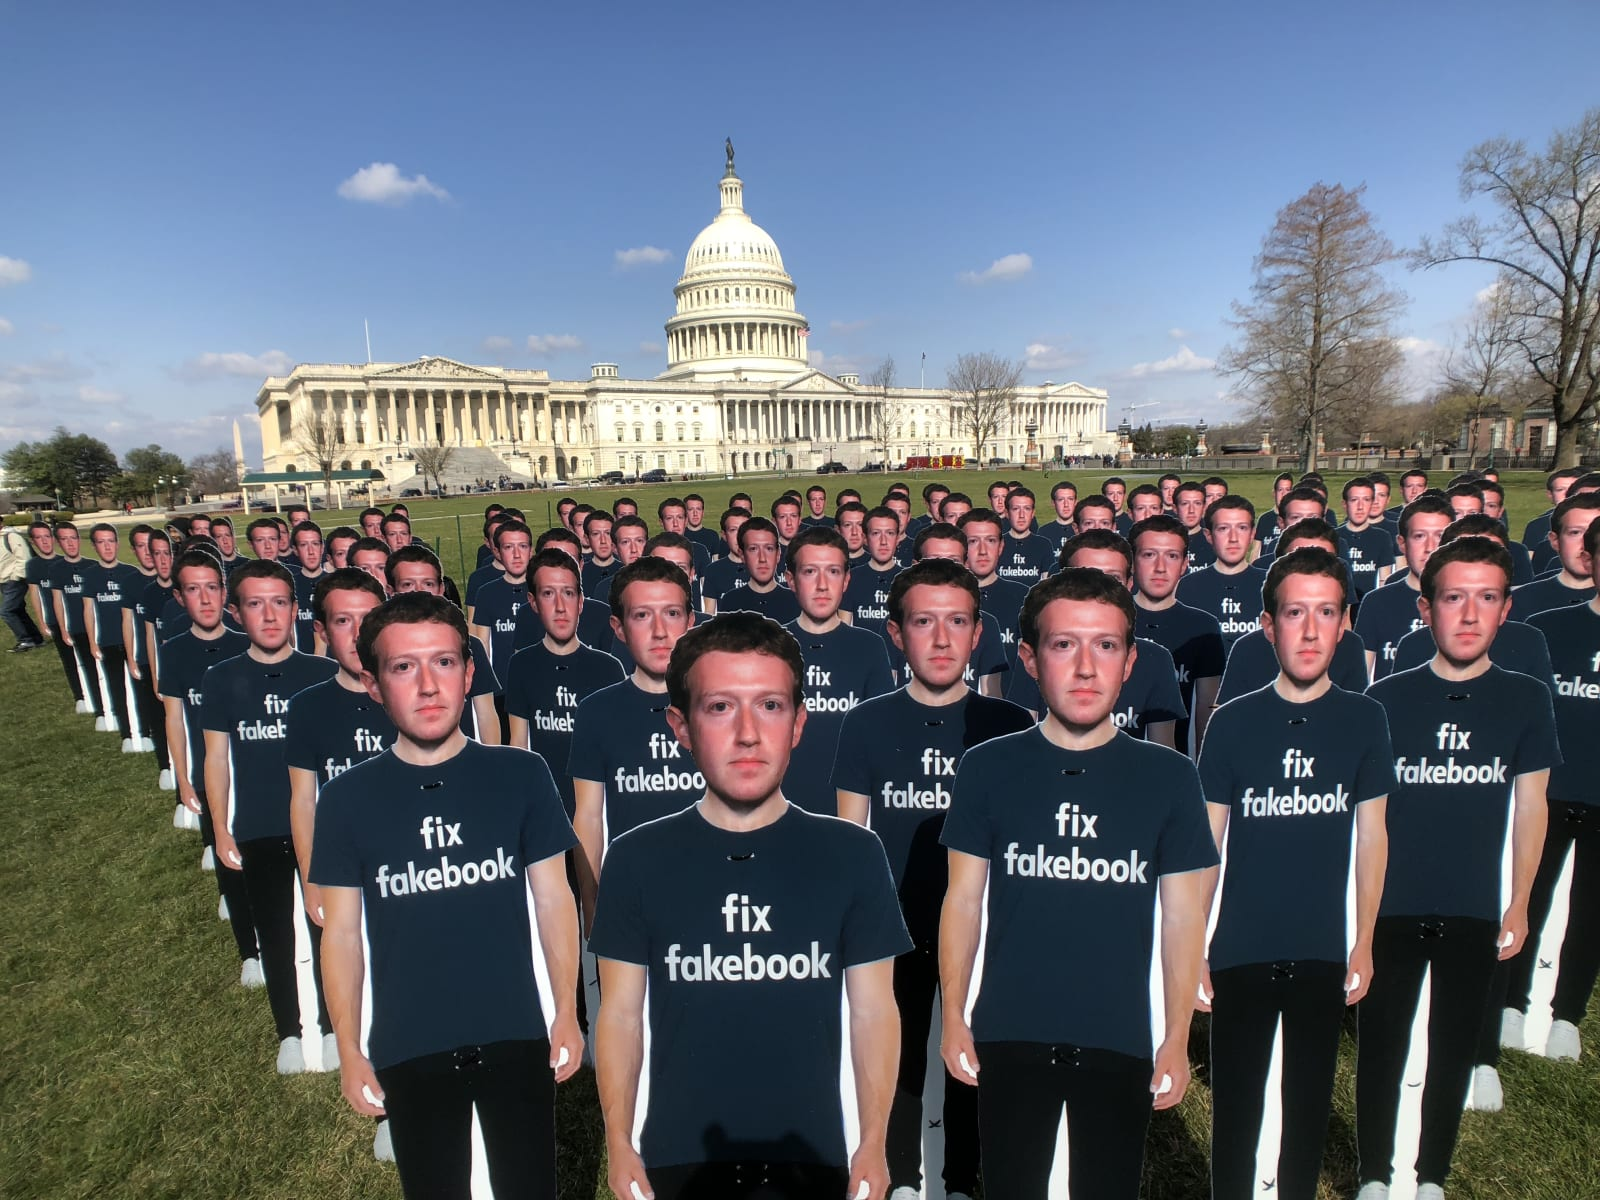 WASHINGTON DC - APRIL 10, 2018 One hundred cut outs of Facebook